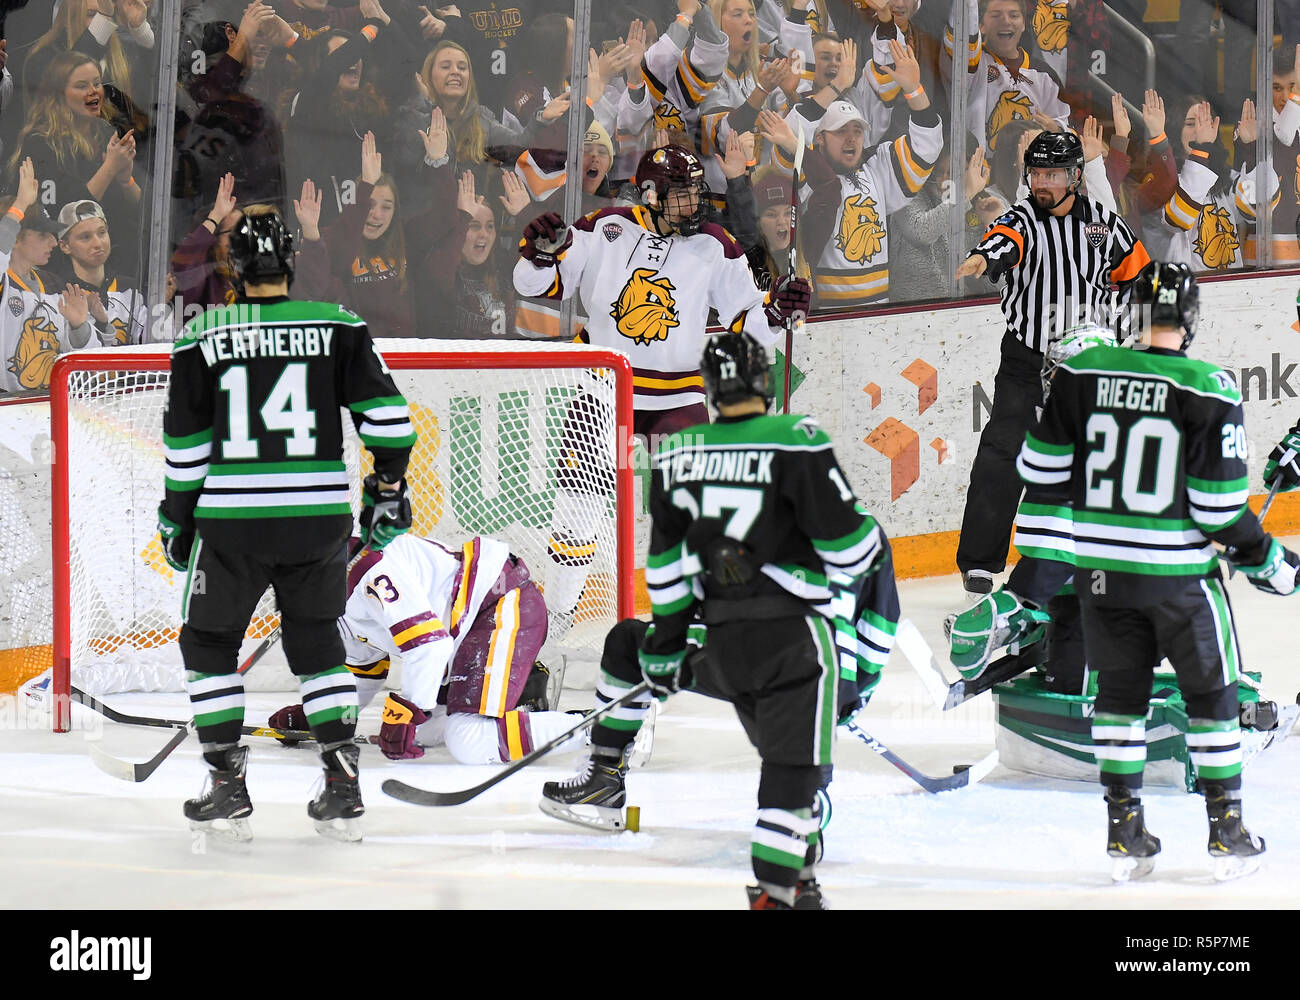 December 1, 2018 Players look to the referee as he signals a Minnesota Duluth goal during a NCAA men's ice hockey game between the University of North Dakota Fighting Hawks and the Minnesota Duluth Bulldogs at Amsoil Arena in Duluth, MN. North Dakota won 2-1. Photo by Russell Hons/CSM Stock Photo